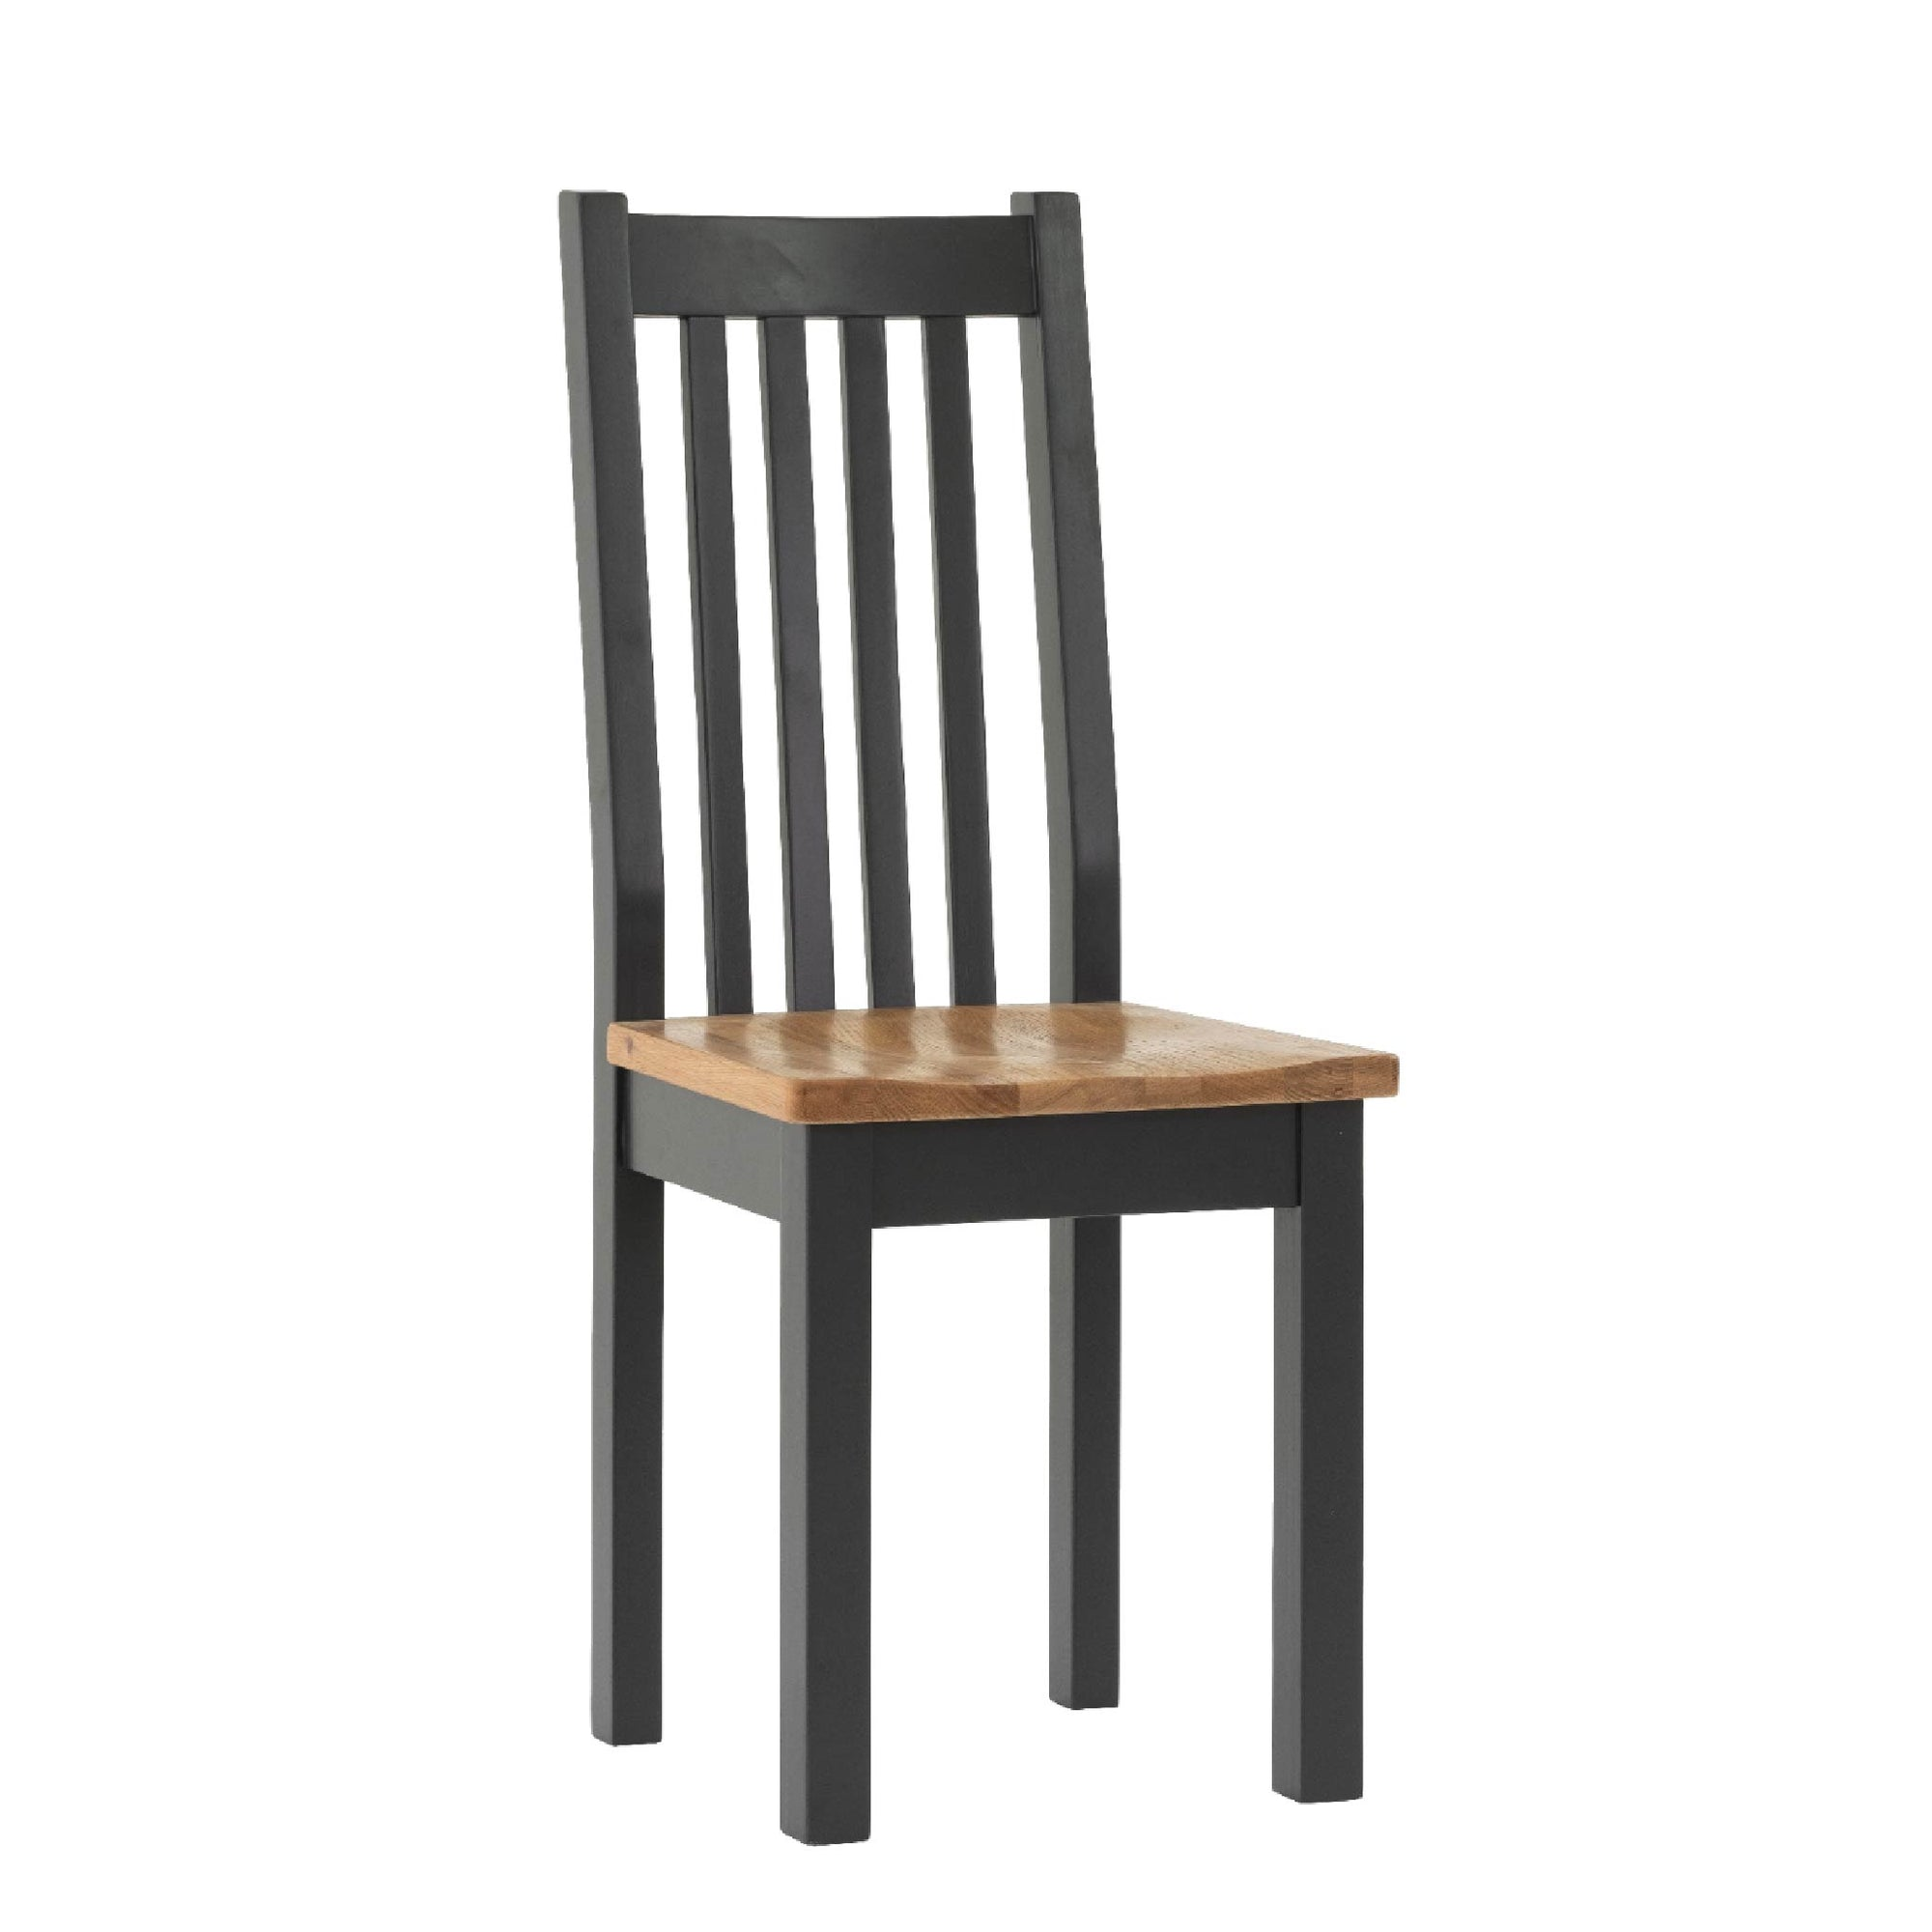 Charlestown Black Dining Chair by Roseland Furniture